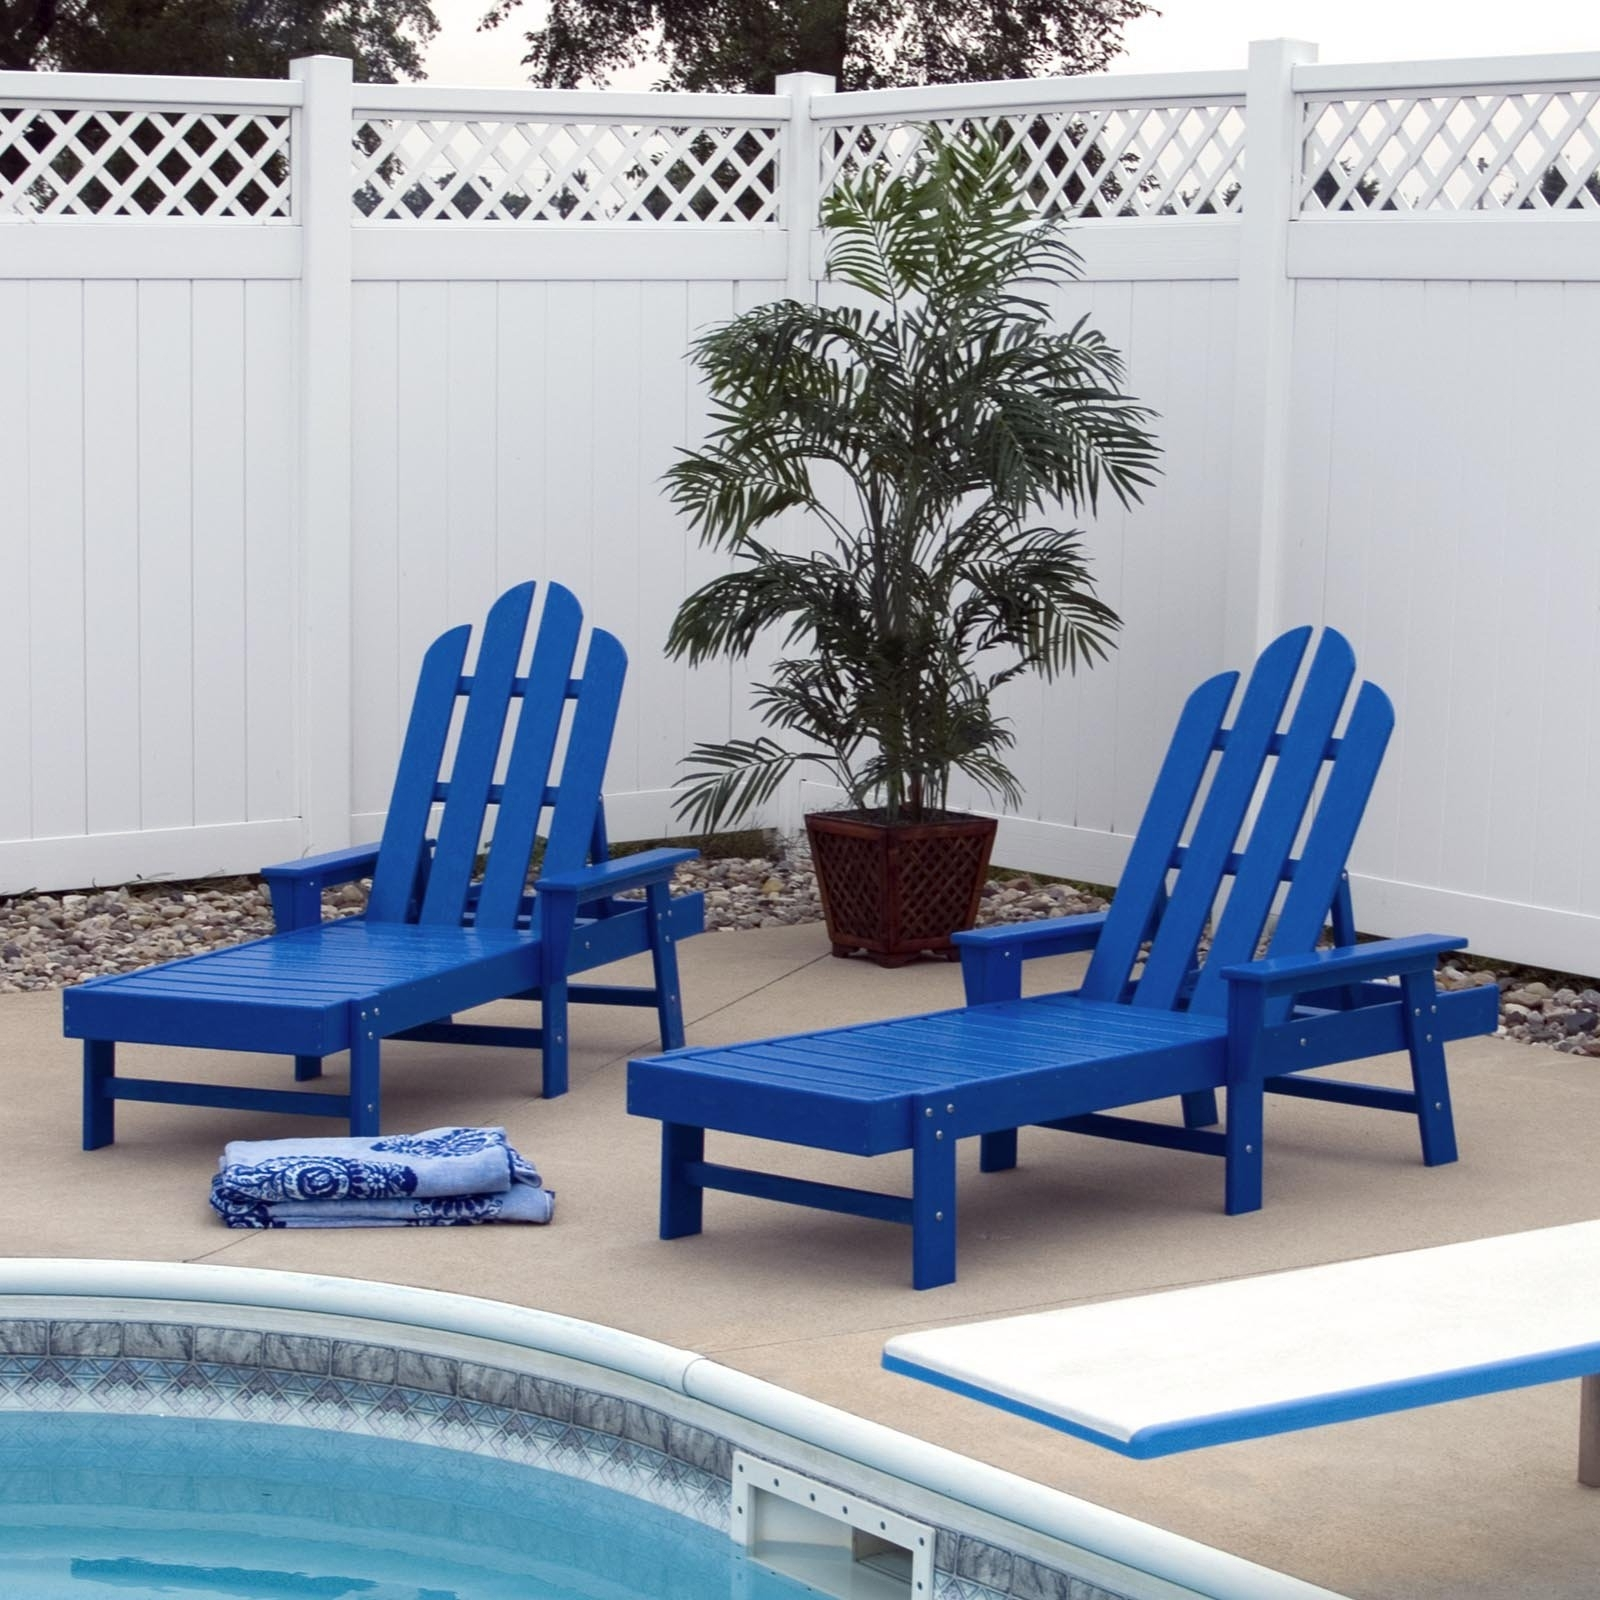 Blue Cozy Floating Pool Lounge Chair With Back Rest Floating Pool Intended For Current Floating Chaise Lounges (View 11 of 15)